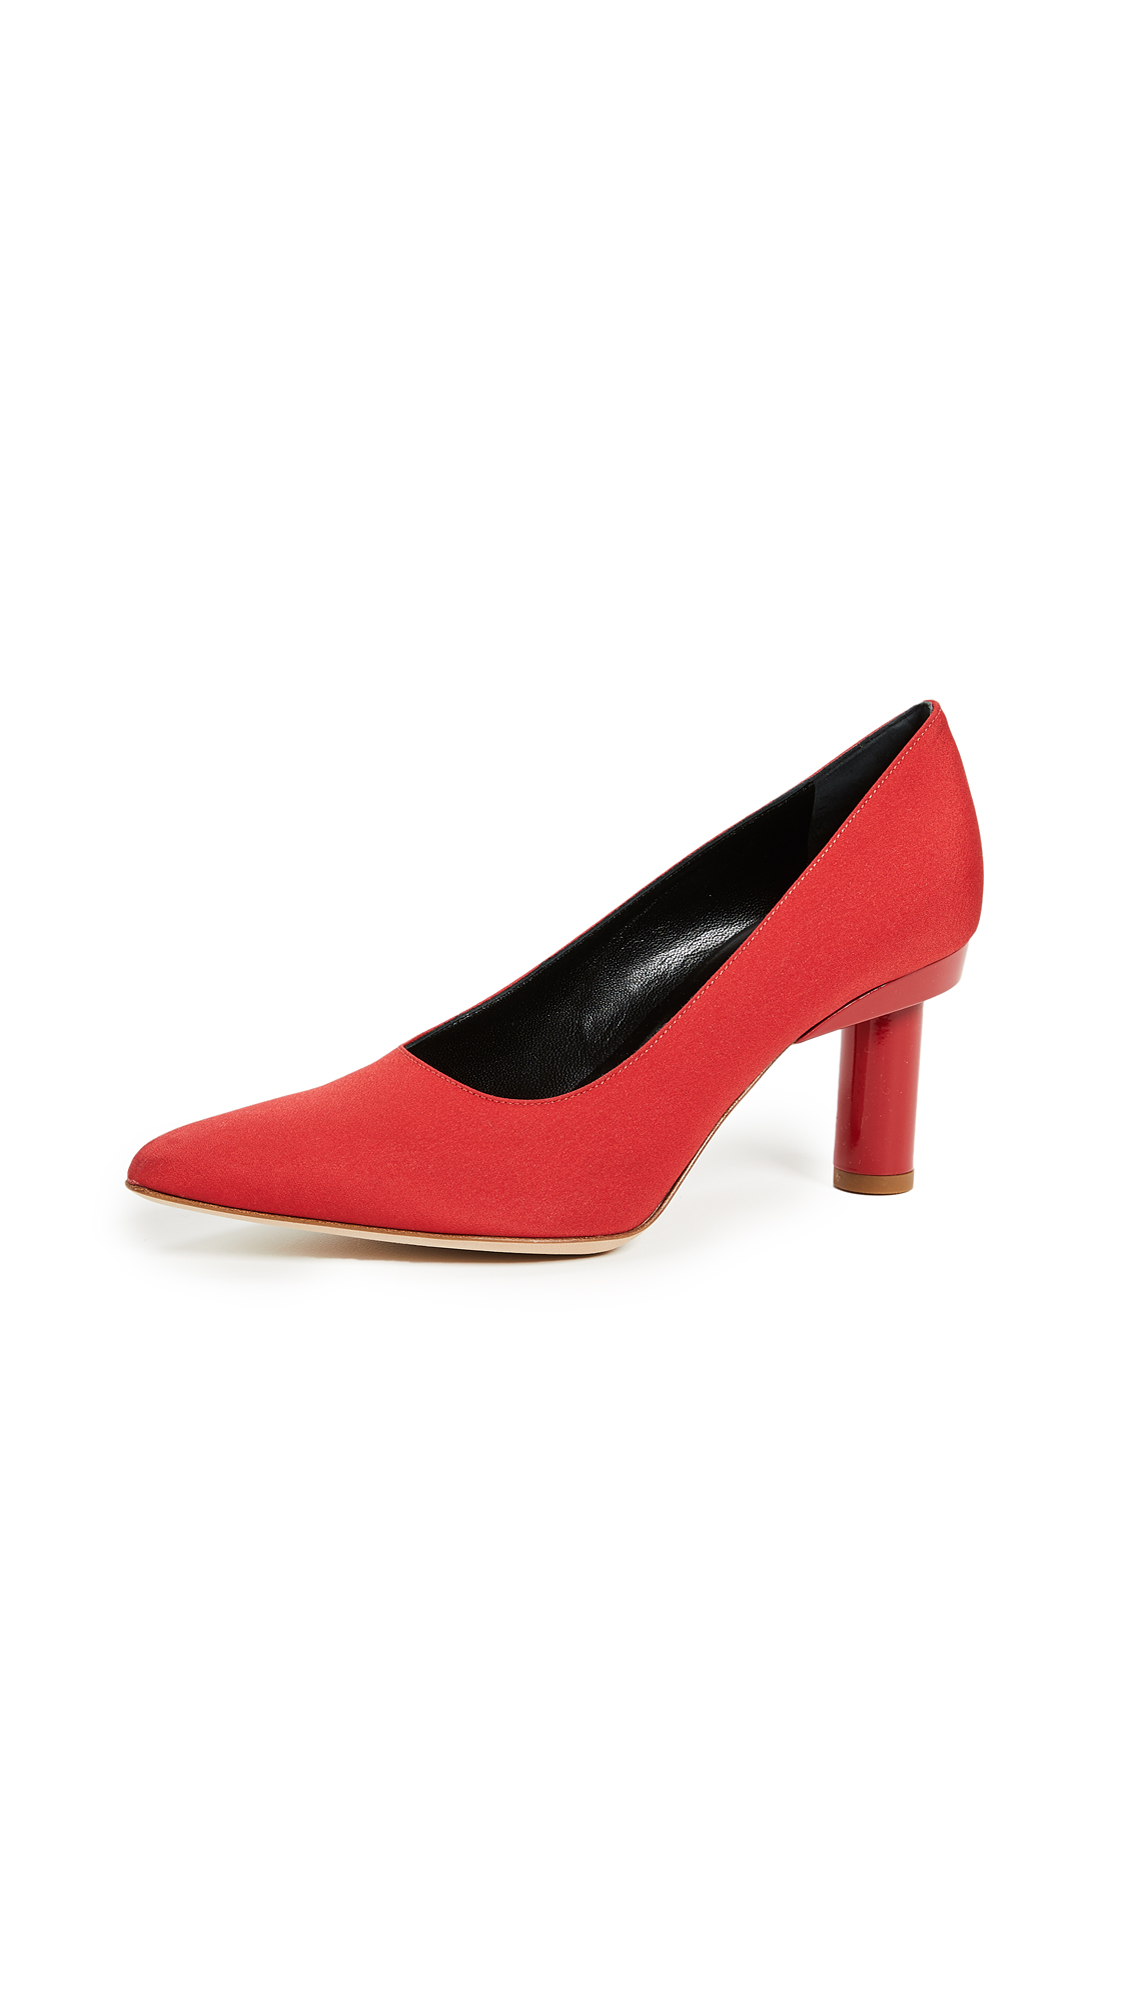 Tibi Zo Pumps - Red